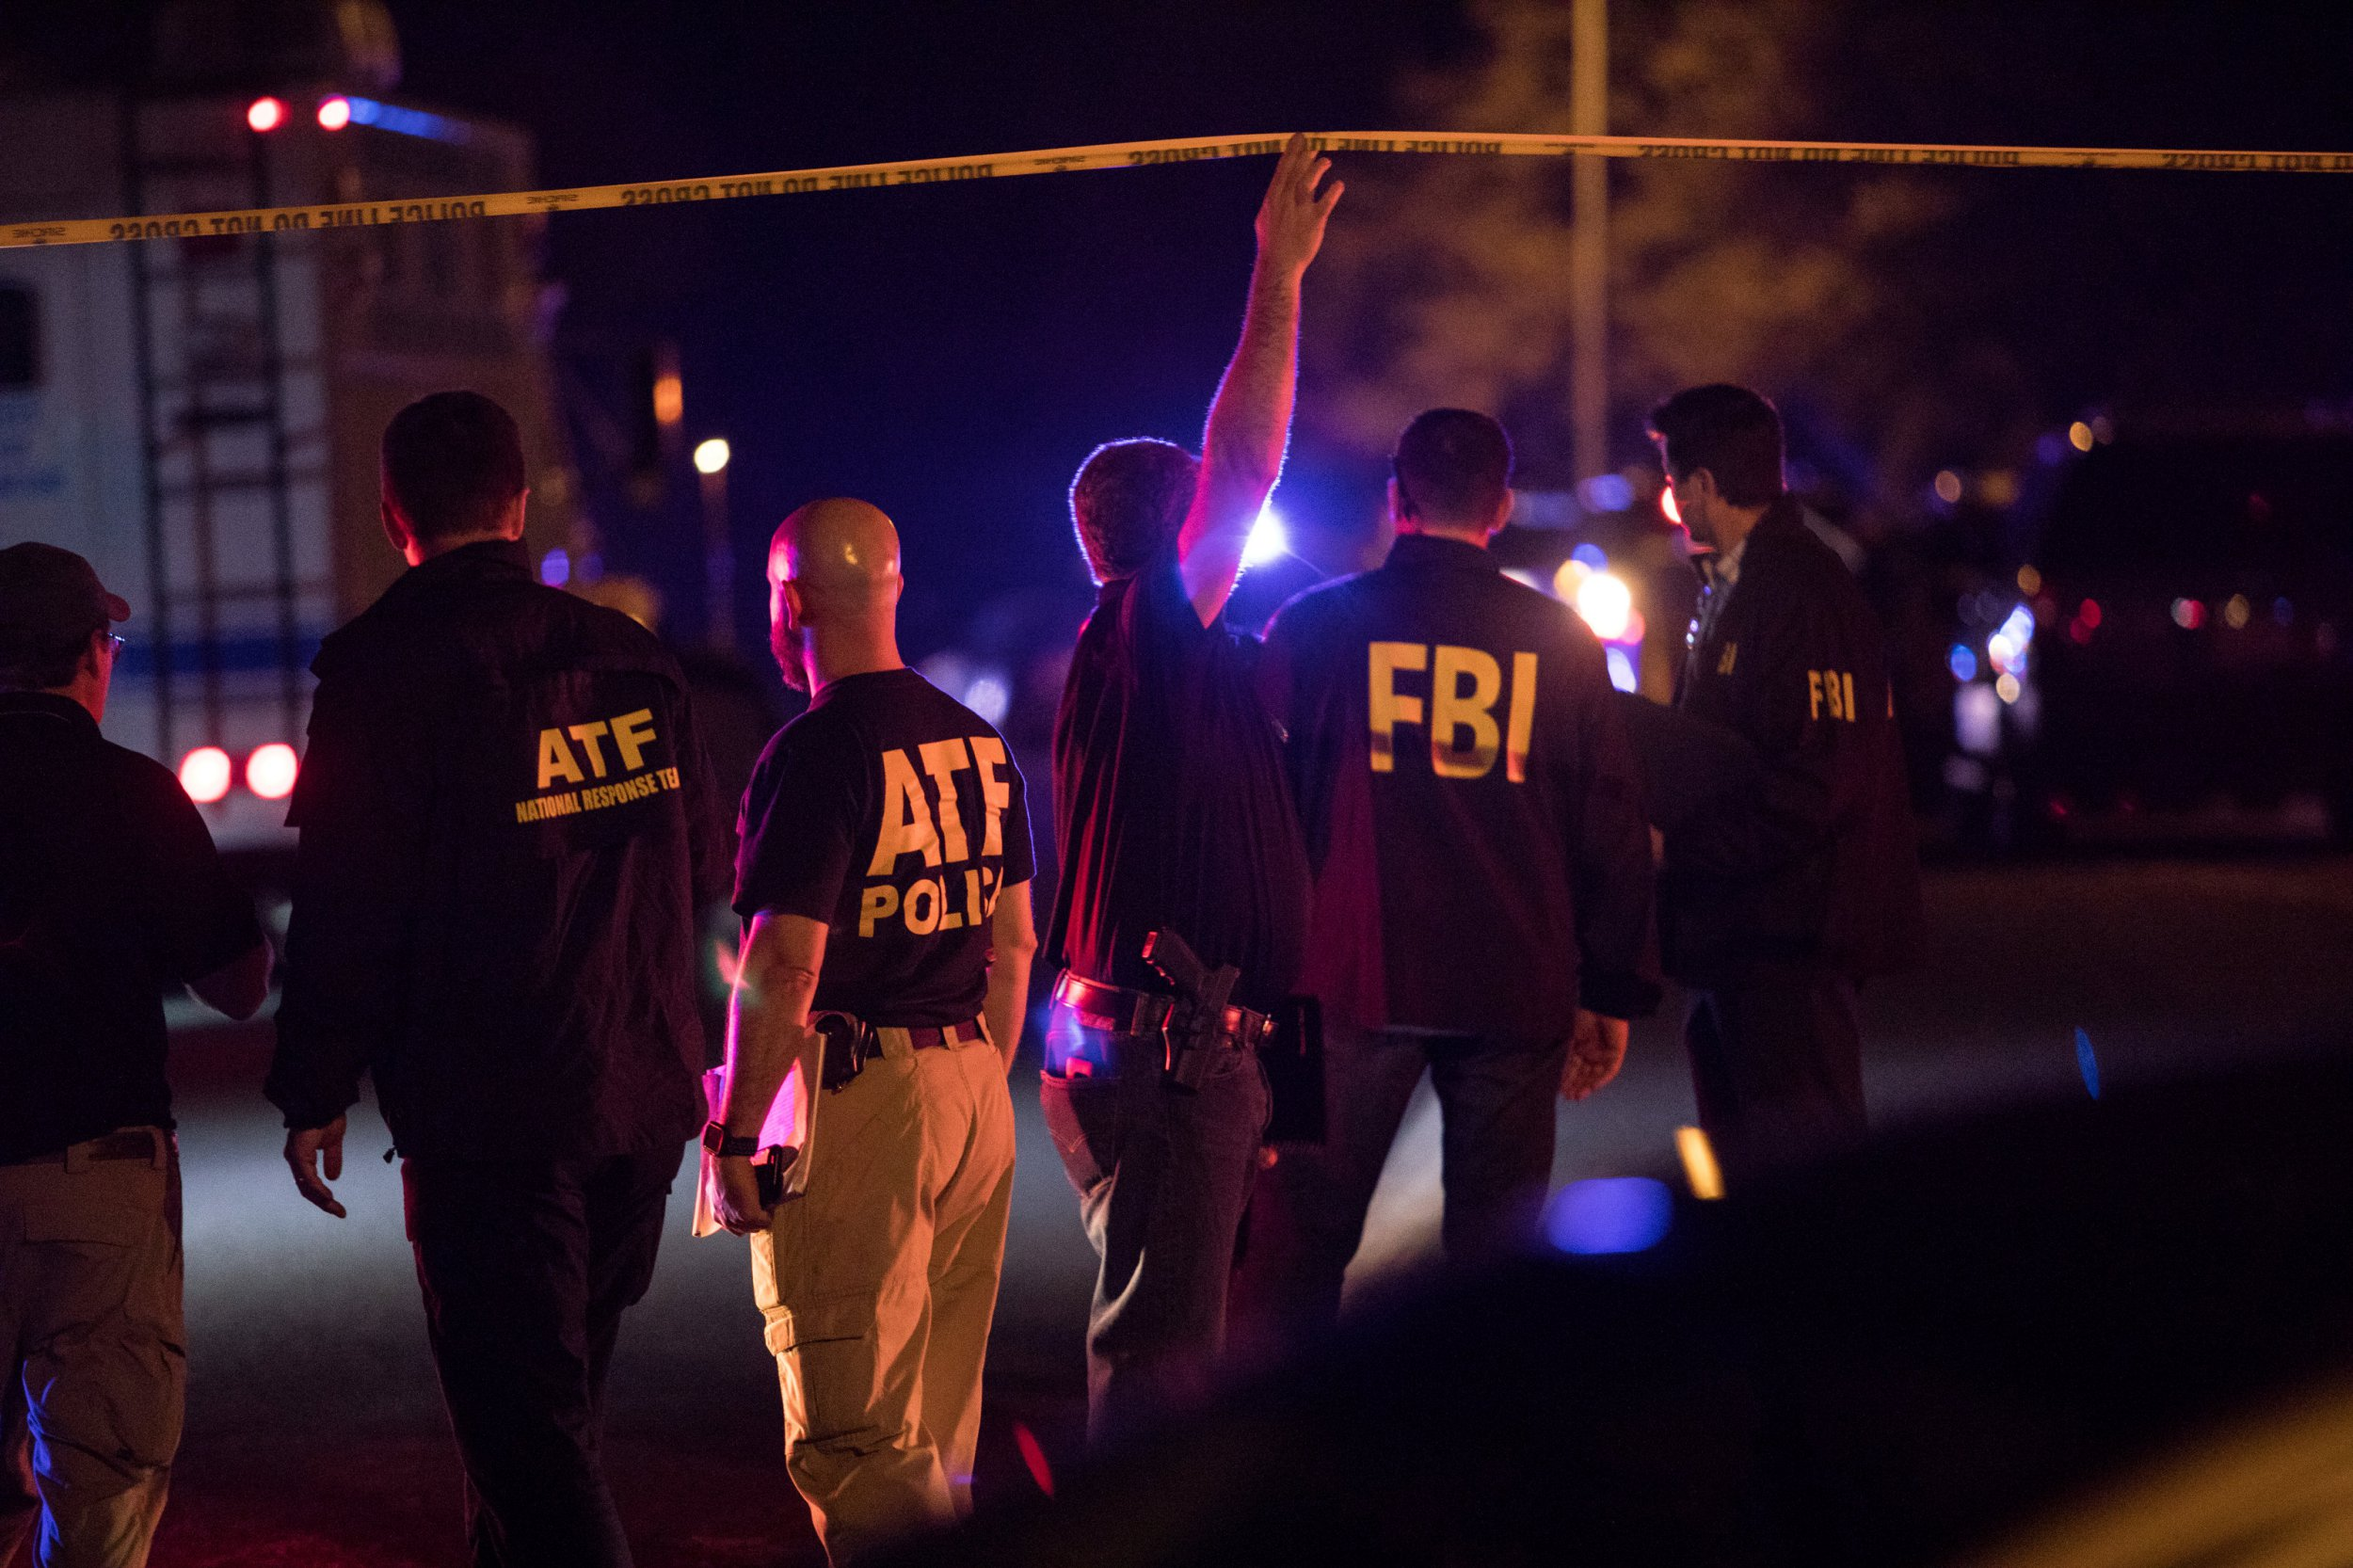 Police maintain a cordon near the site of an incident reported as an explosion in southwest Austin, Texas, U.S. March 18, 2018. REUTERS/Tamir Kalifa